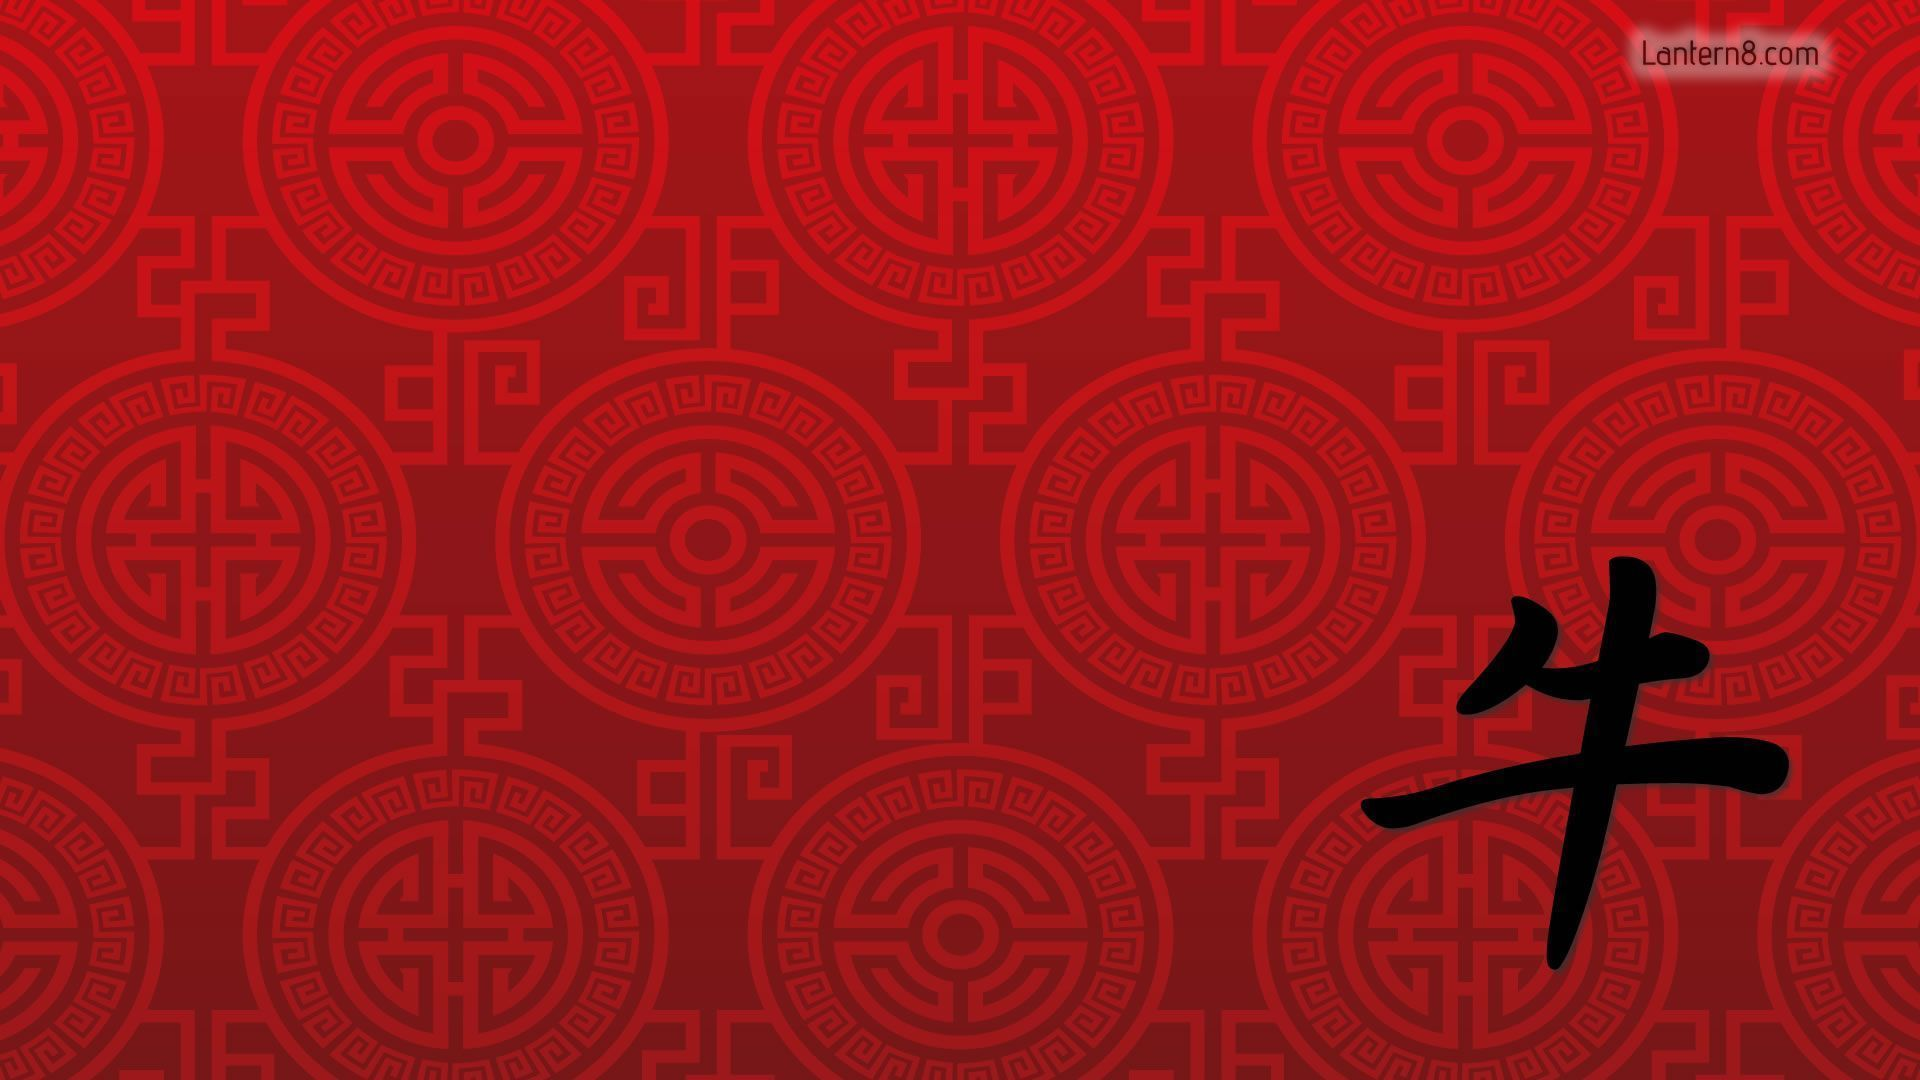 1920x1080 Chinese Writing Wallpaper Group (67+), Download for free